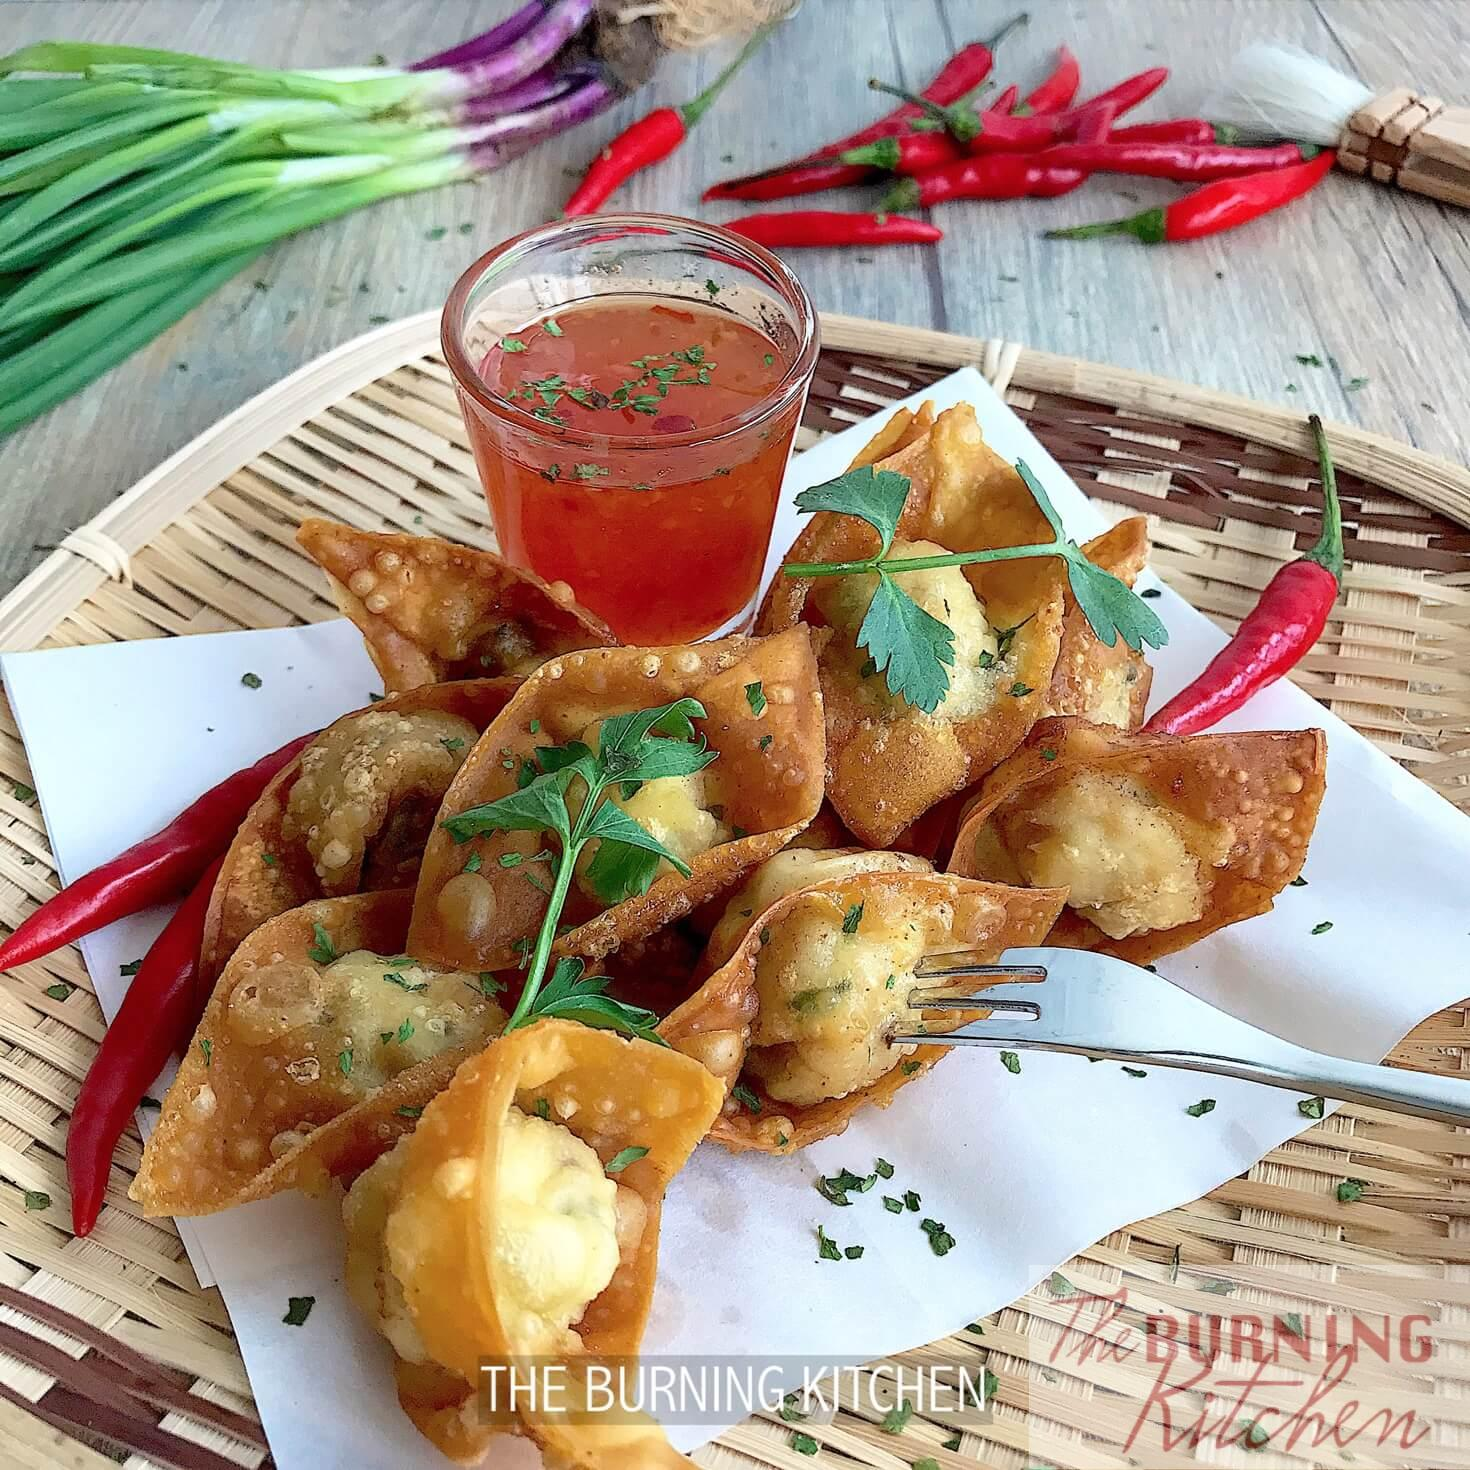 Crispy Wonton with Thai Sweet Chilli Sauce: Dig this decadent golden crispy treat served with Thai Sweet Chilli Sauce for that combination of juicy, crispy, sweet and savoury flavours that burst into your mouth! Serve with Hong kong noodles or on its own!